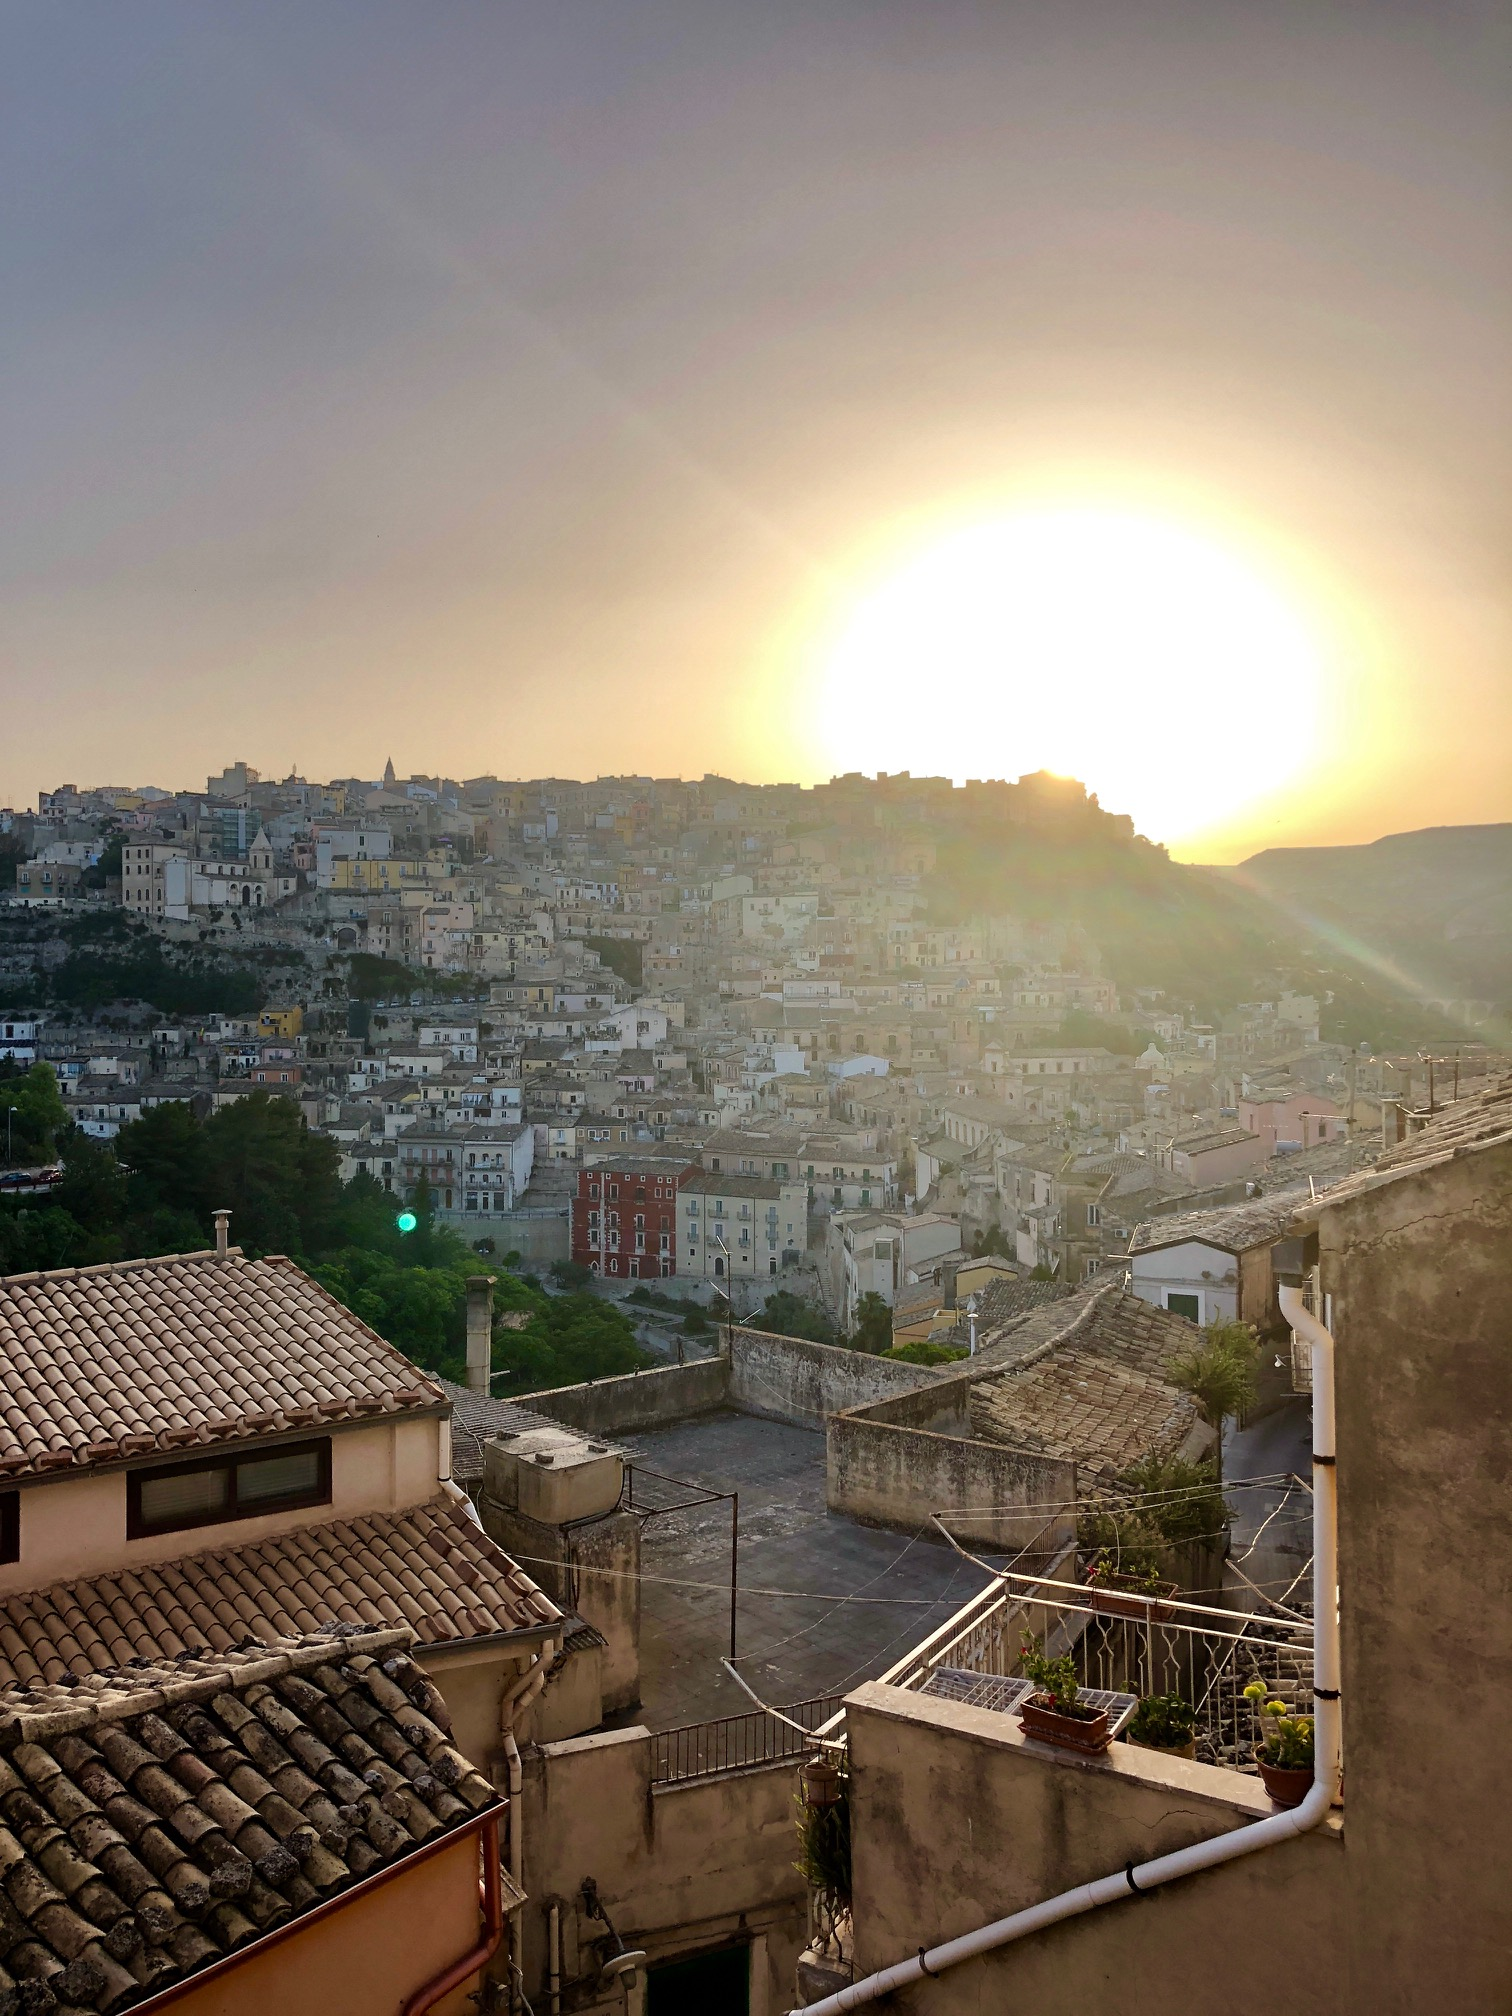 Modica from the hilltop